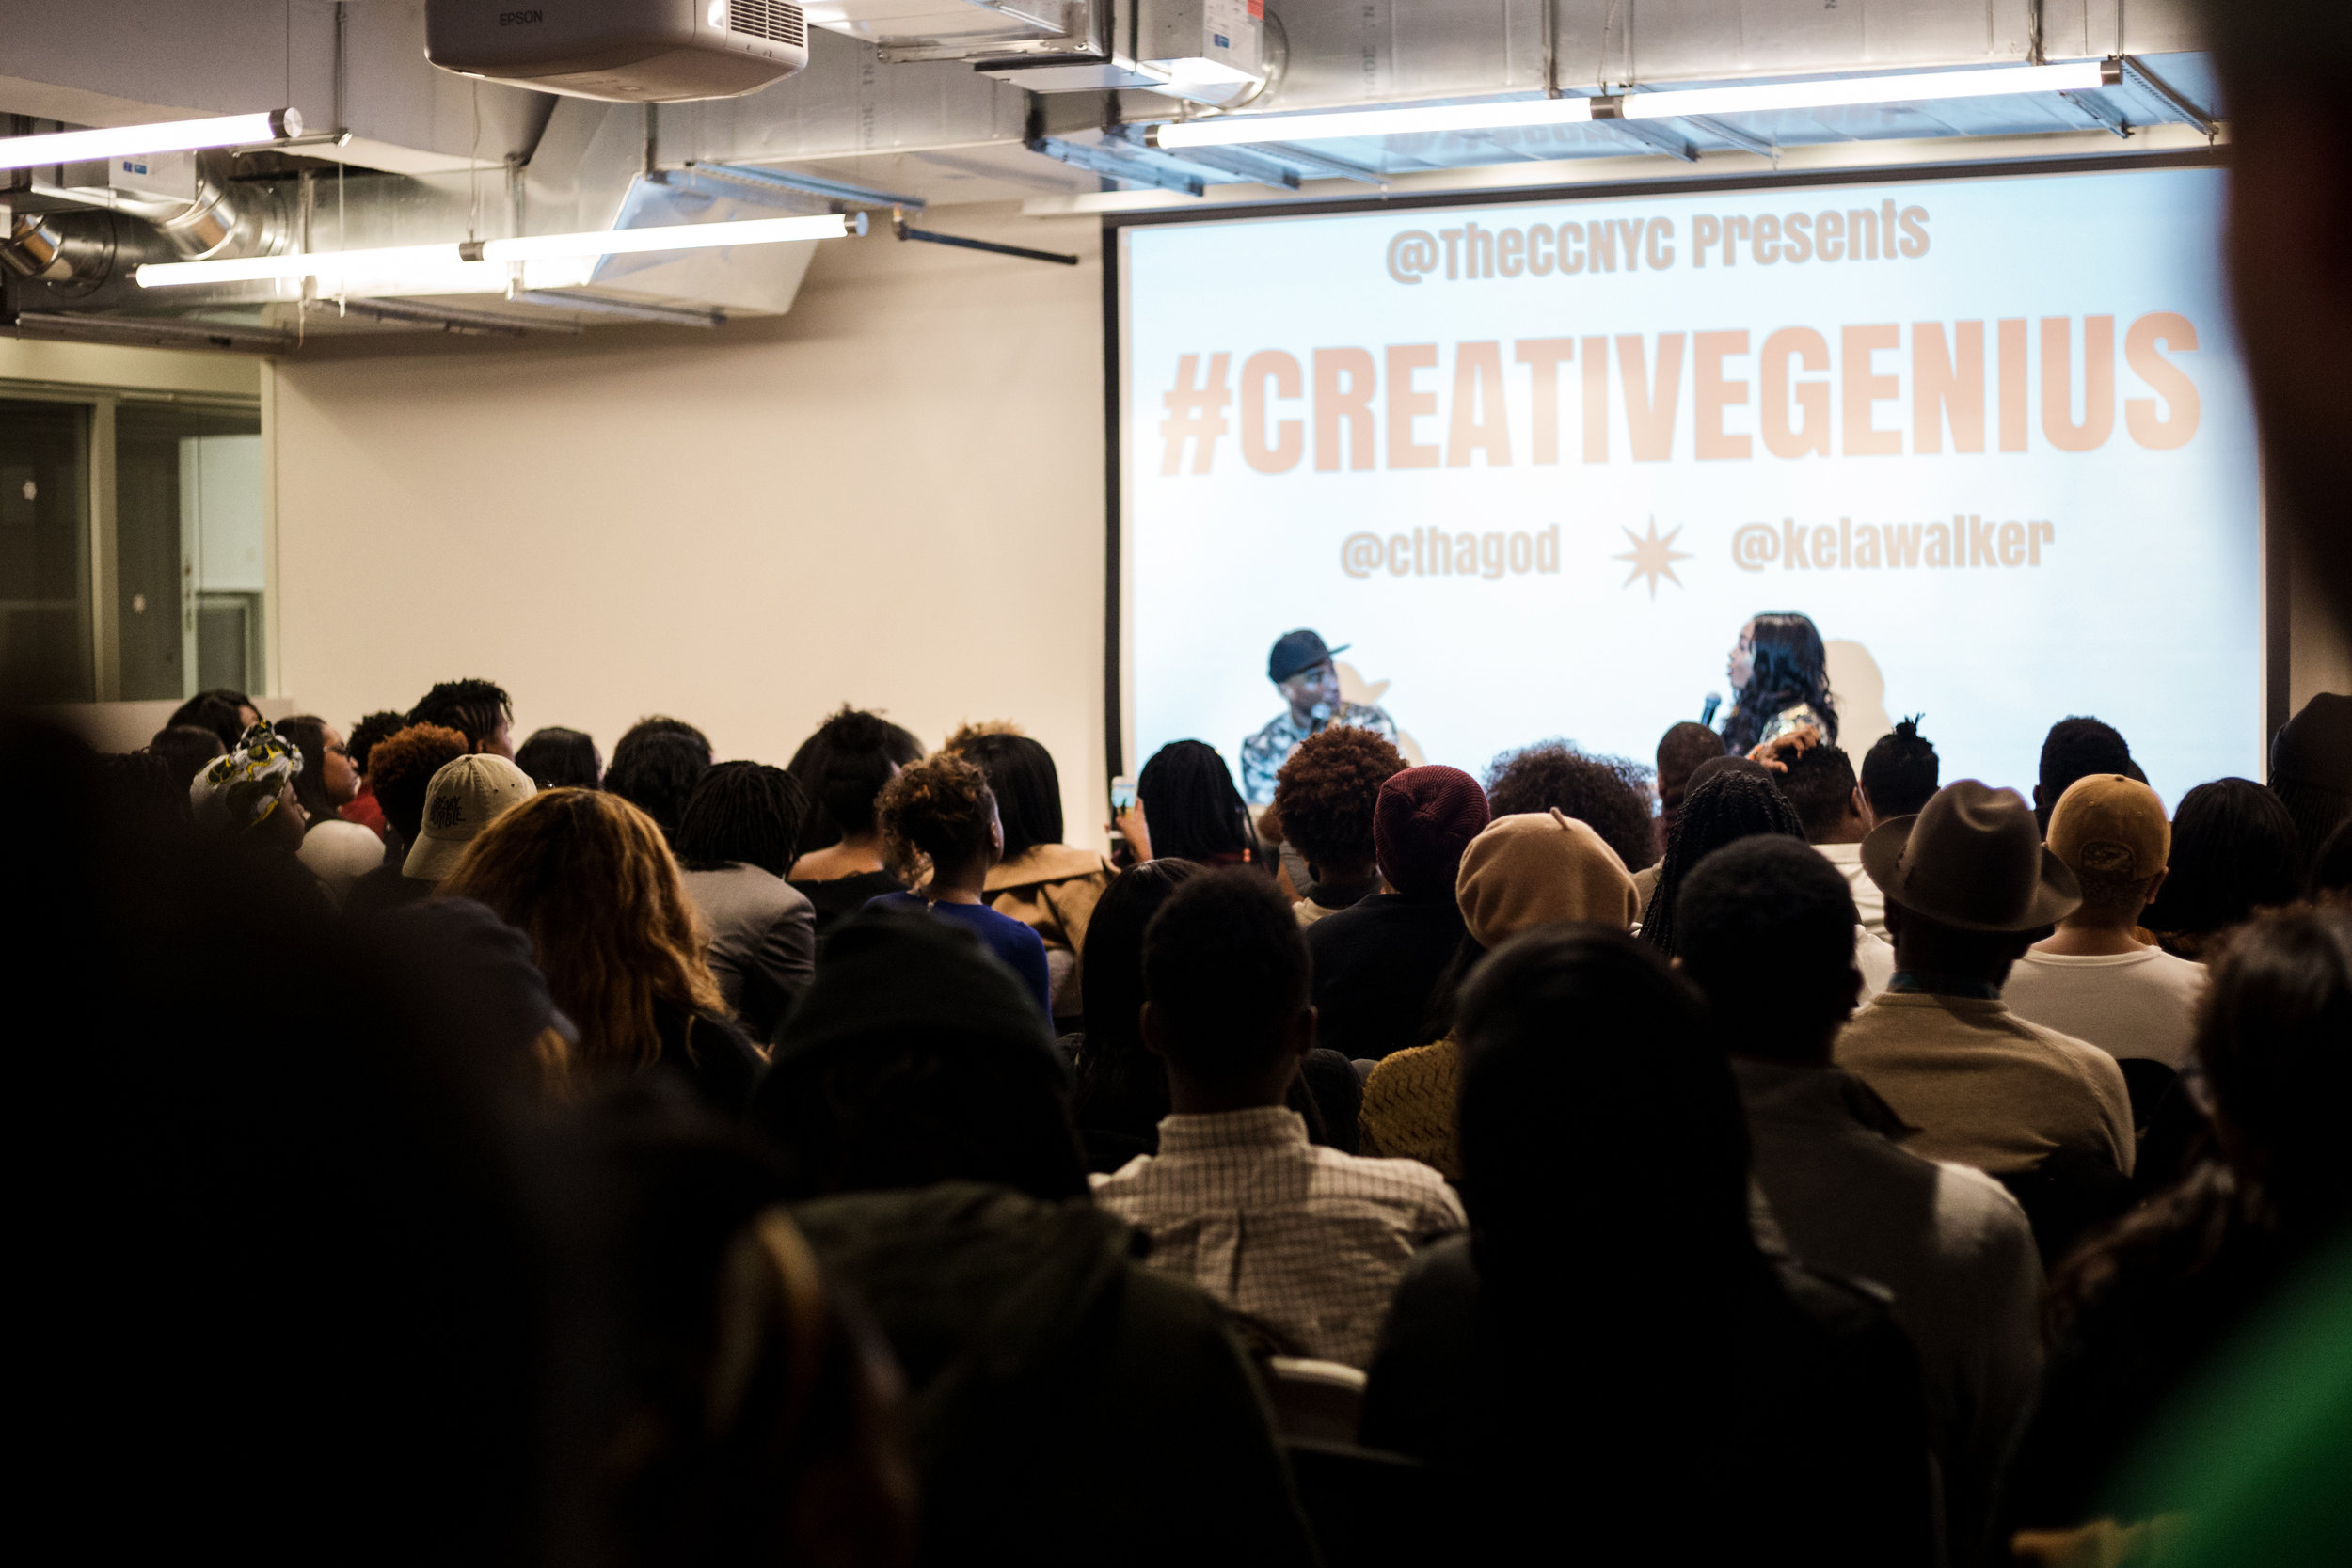 """This is my second time covering a Creative Collective event and also my second time being astonished by the amount of positive, creative energy resonating in one space. December 13th, The Creative Collective NYC presented Creative Genius their end of the year event which was a conversation with New York Times bestseller and host of """"The Breakfast Club""""  Charlamagne Tha God .  Kéla Waler , the Emmy Nominated TV Host/ Producer acted as the moderator for this event and I must say that both her and Charlamagne did an amazing job. Ms. Walker has a more personable approach to interviewing, which gives off the impression that she is friends with the interviewee. This is pleasant to watch because it allows for the audience to feel like they are somewhat involved in a conversation that two friends could have any day, rather than two celebrities conversing distantly about information they should never have access to. This made space for less fake interactions and more laughter and agreeance with every """"jewel"""" Charlamagne dropped"""". As for Charlamagne, he was just an overall intelligent guy. He took his time responding to each question, he gave hugs to all of his fans/supporter and tried being as transparent with the audience as possible. You can tell his experience as an interviewer has definitely prepared him in several ways for interviews. Lastly, Charlamagne is not an a**hole in person. I know he usually gets a bad rap for his bluntness, but honestly, when you actually experience him in person, you just take it for truth and not """"a**holery."""""""